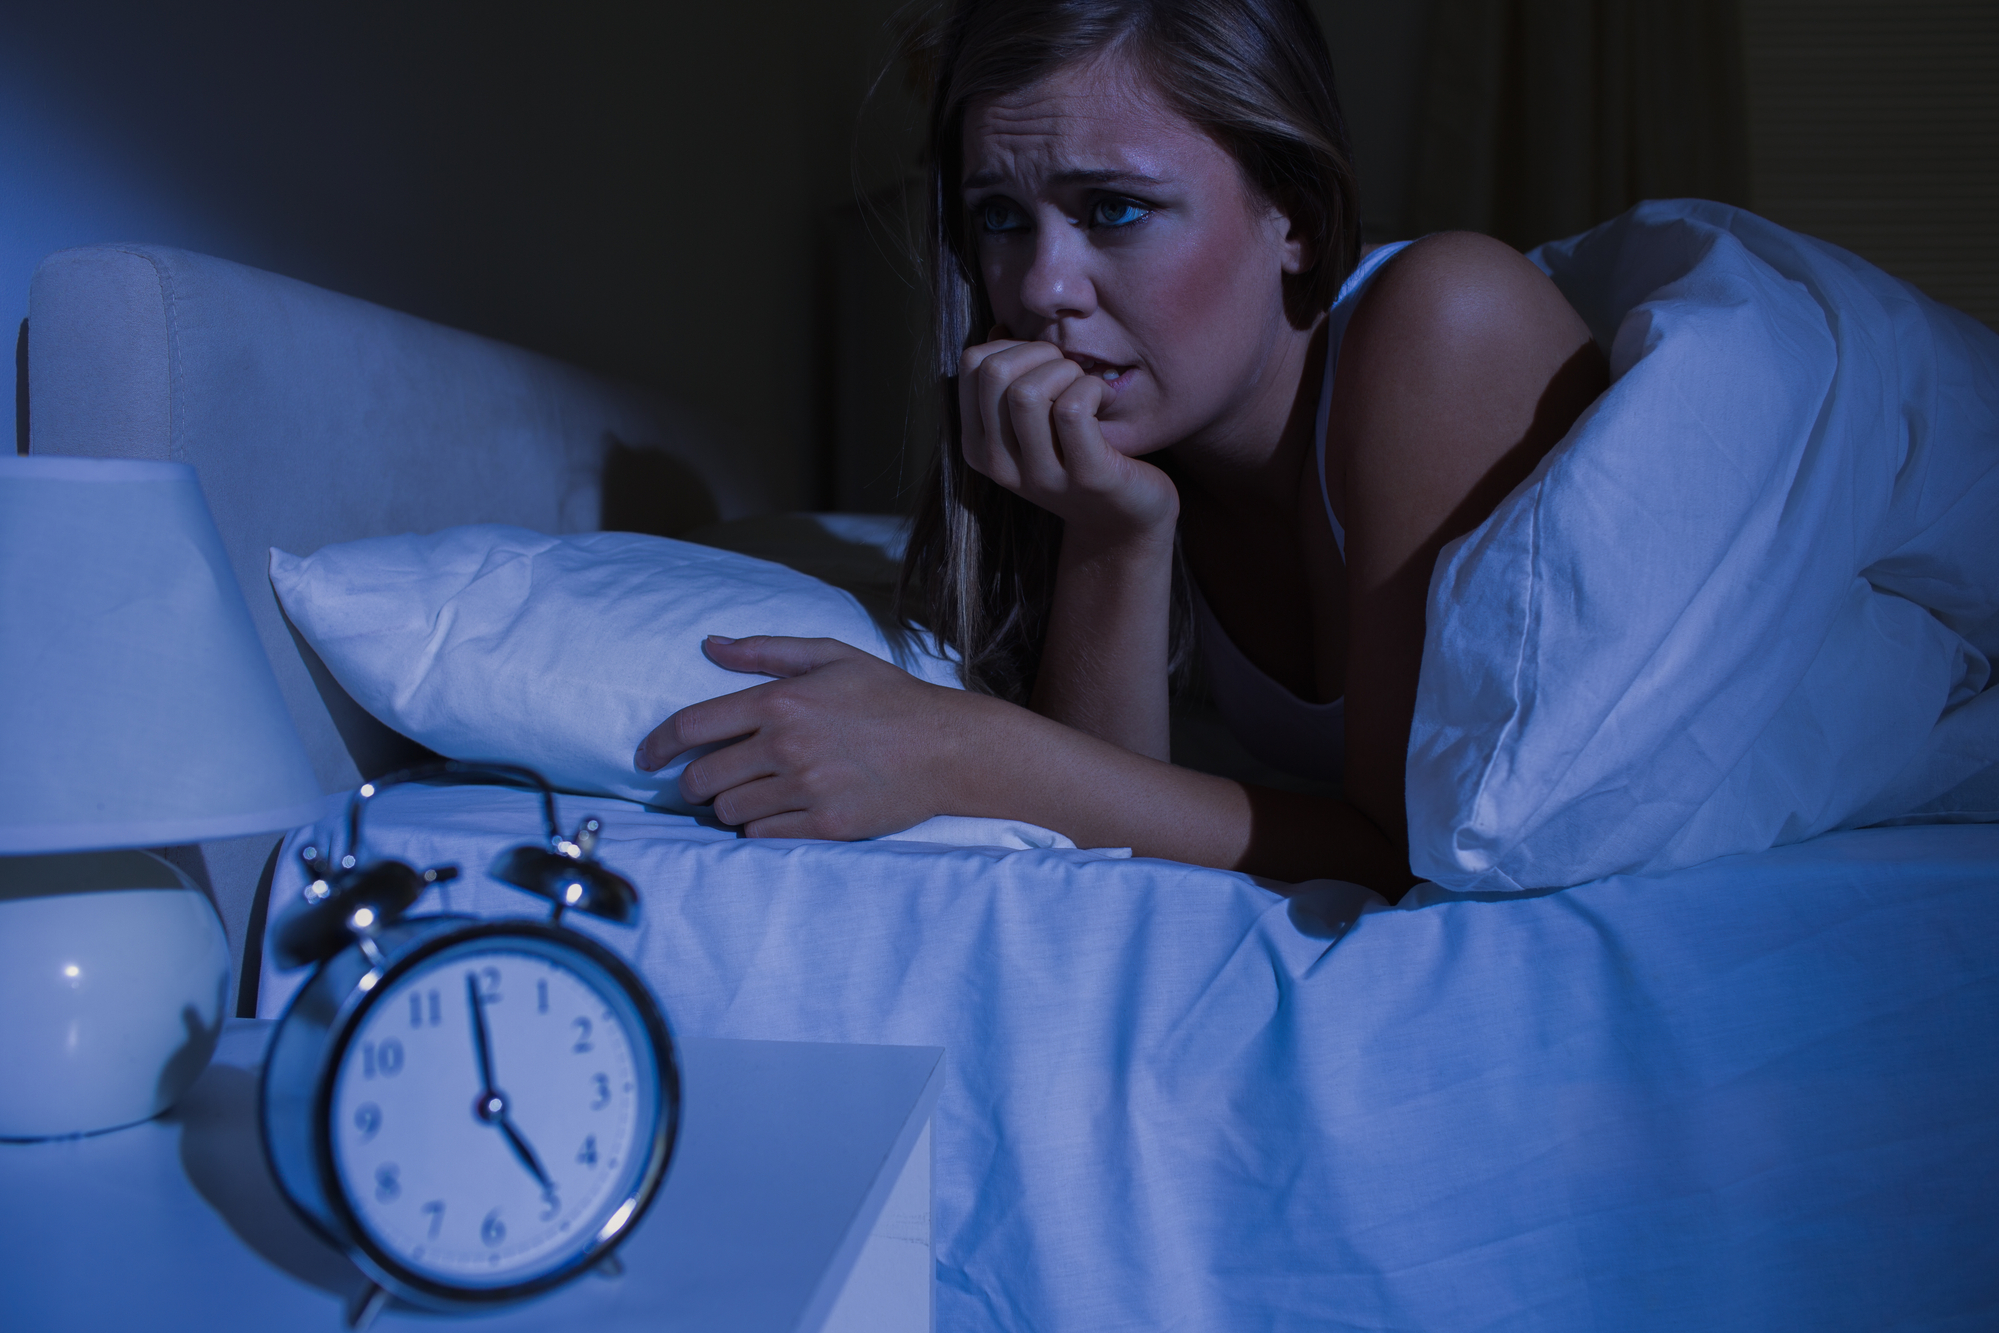 women awake at night thinking about using your spouse's CPAP machine